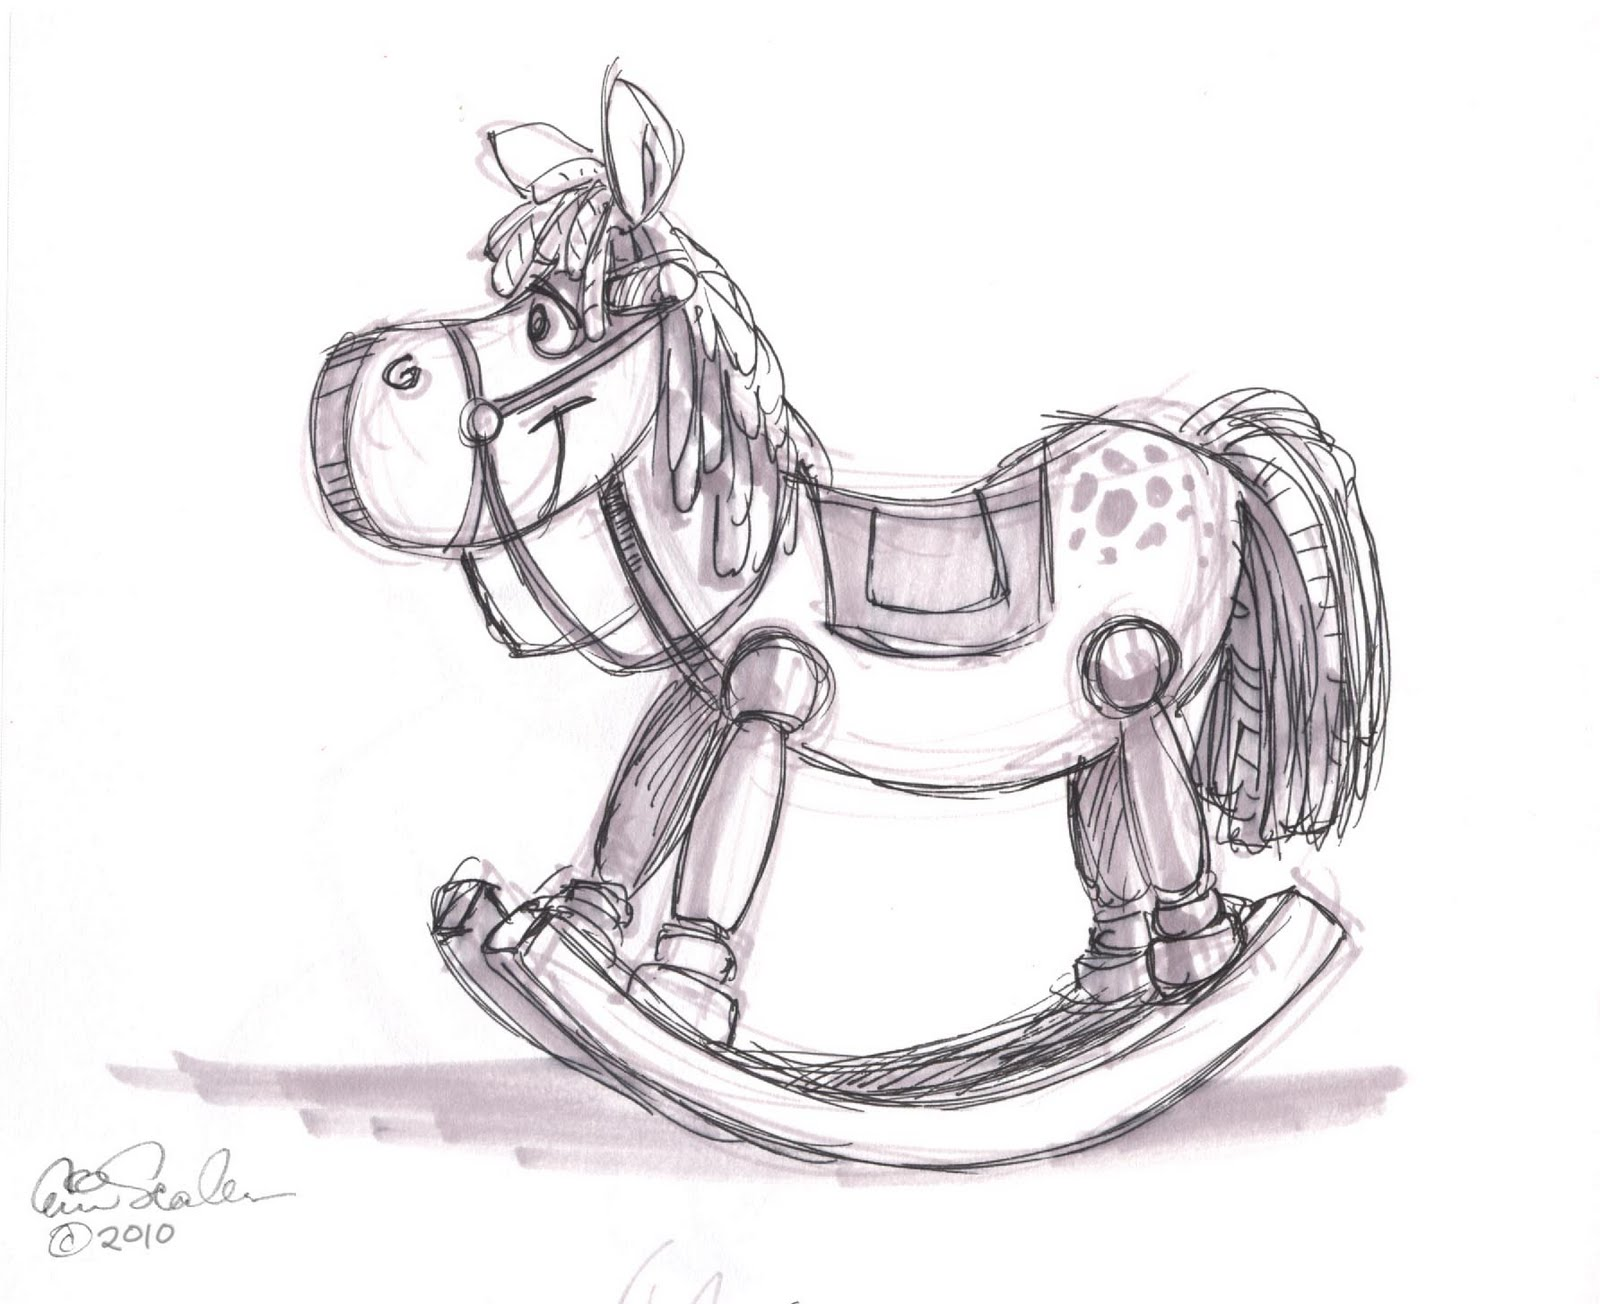 rocking horse sketch templates